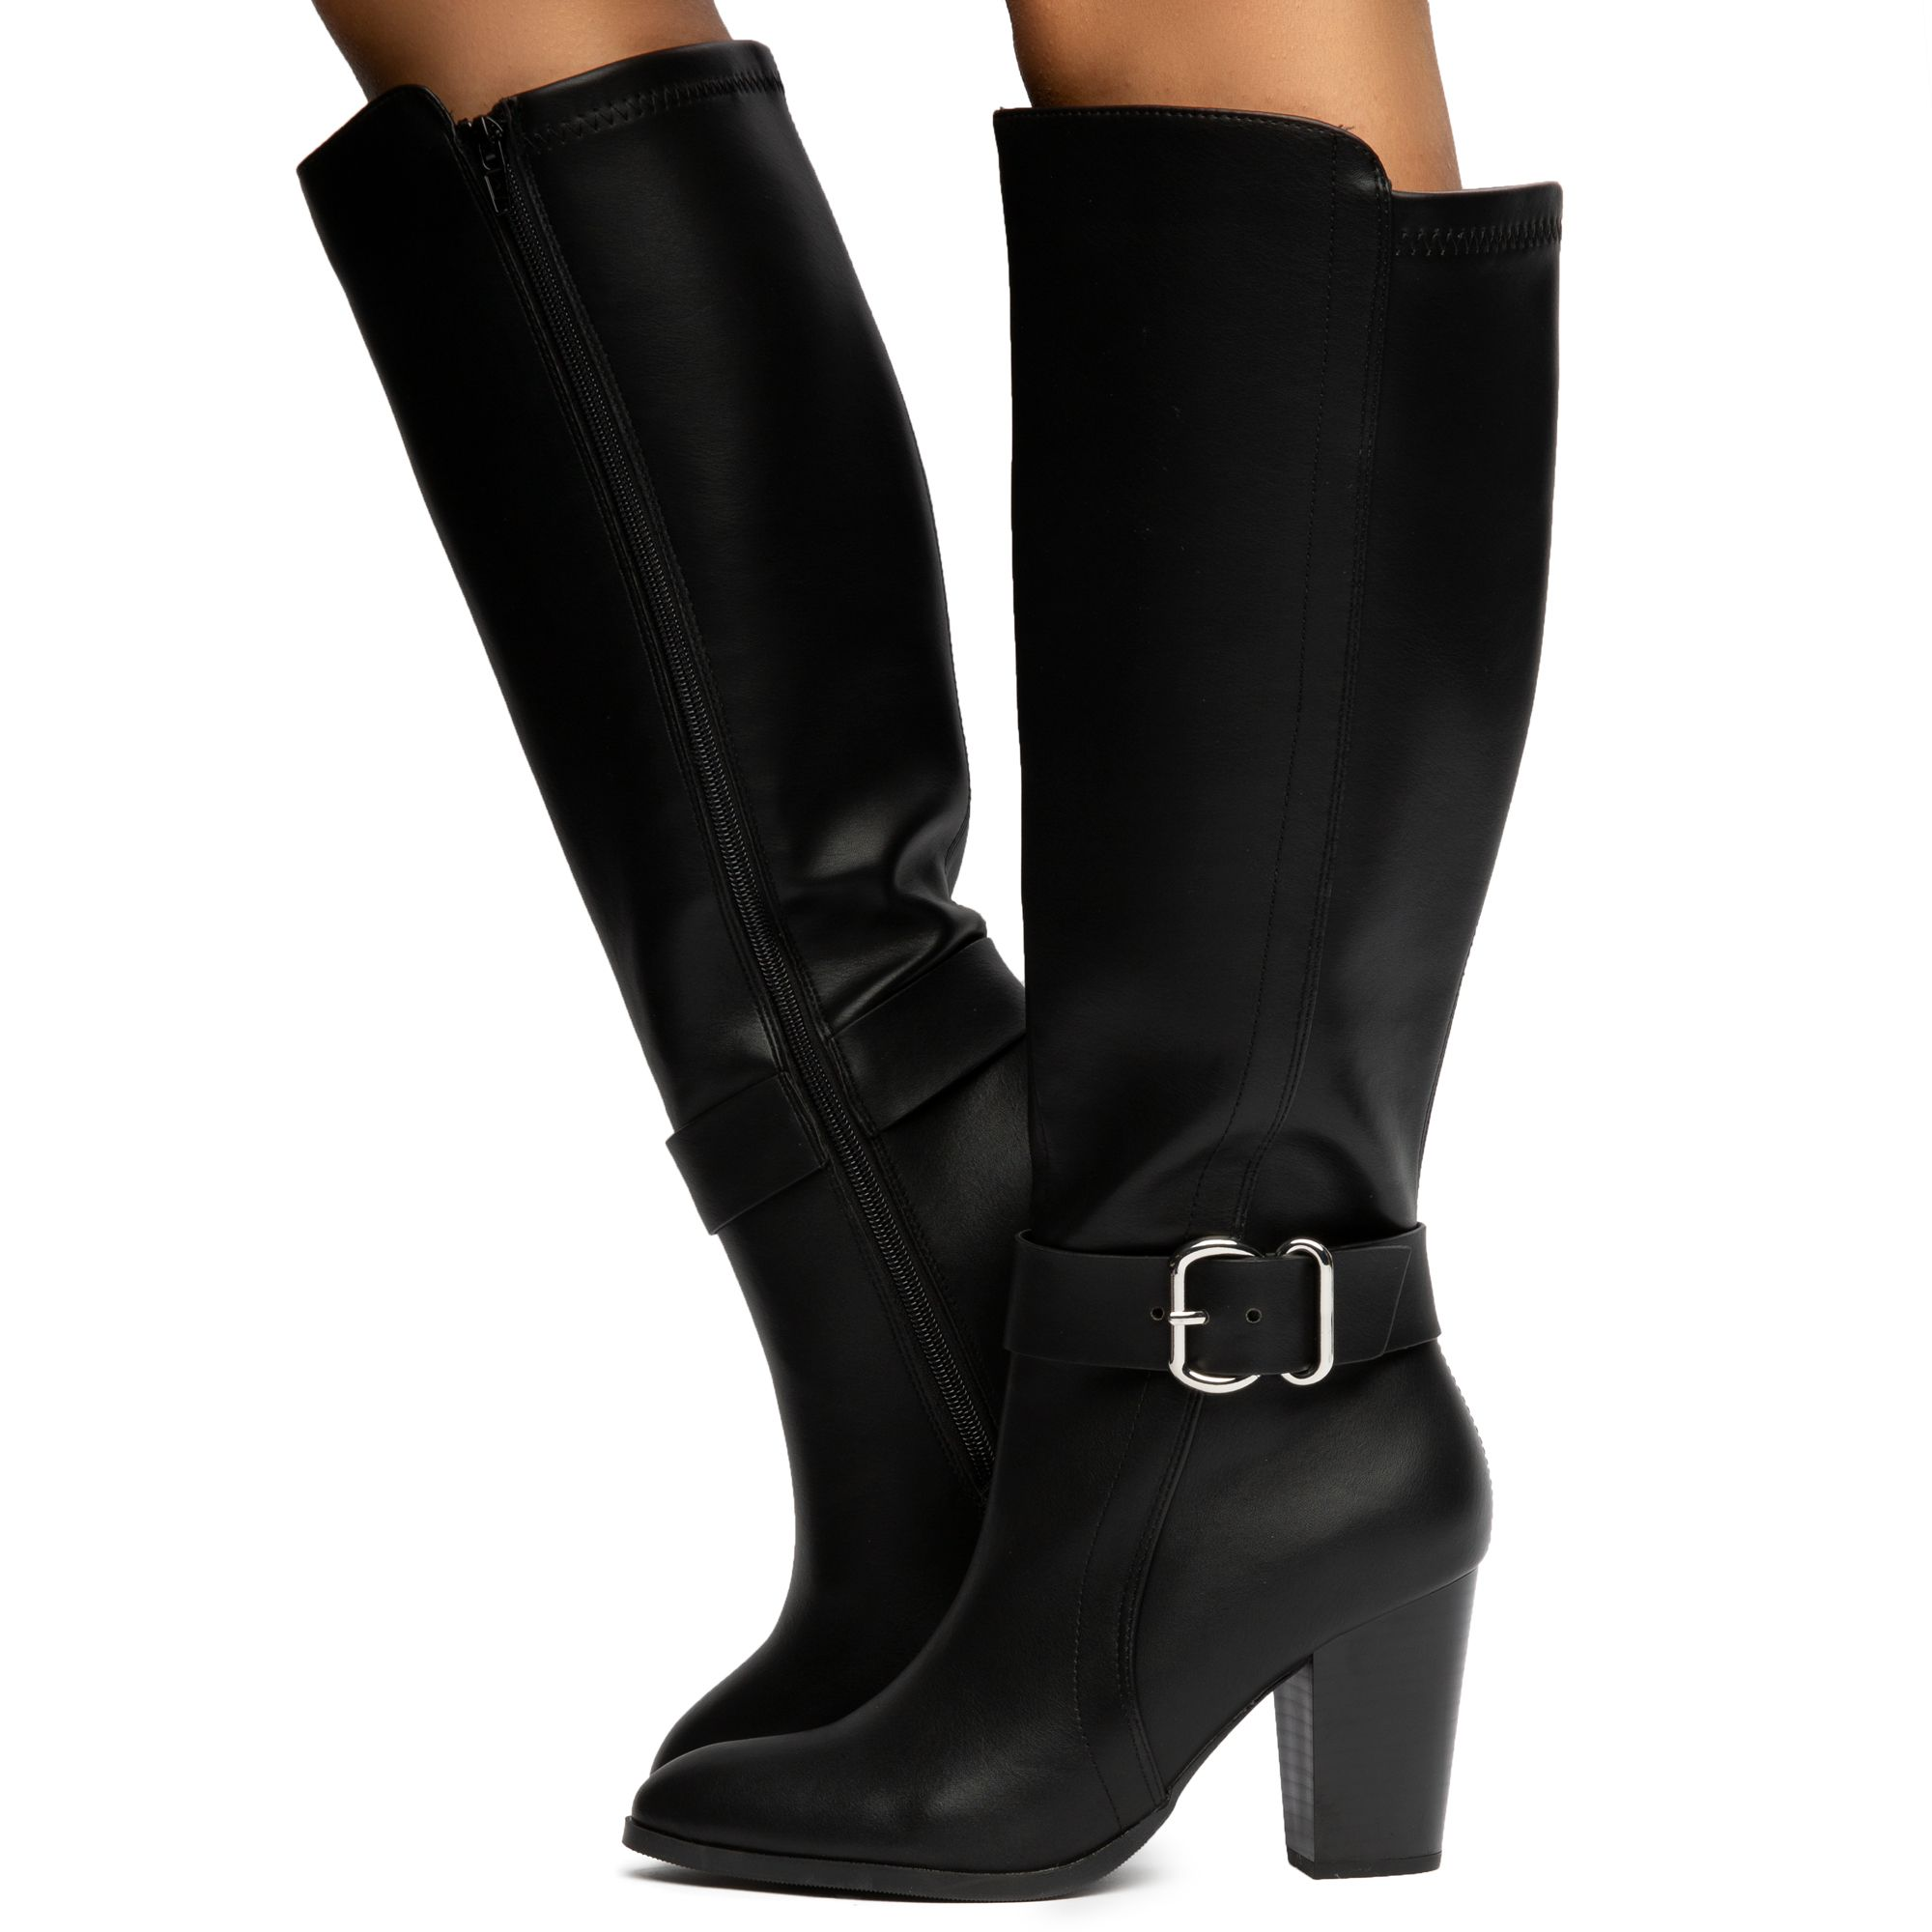 Spencer-S Mid-Calf Boots